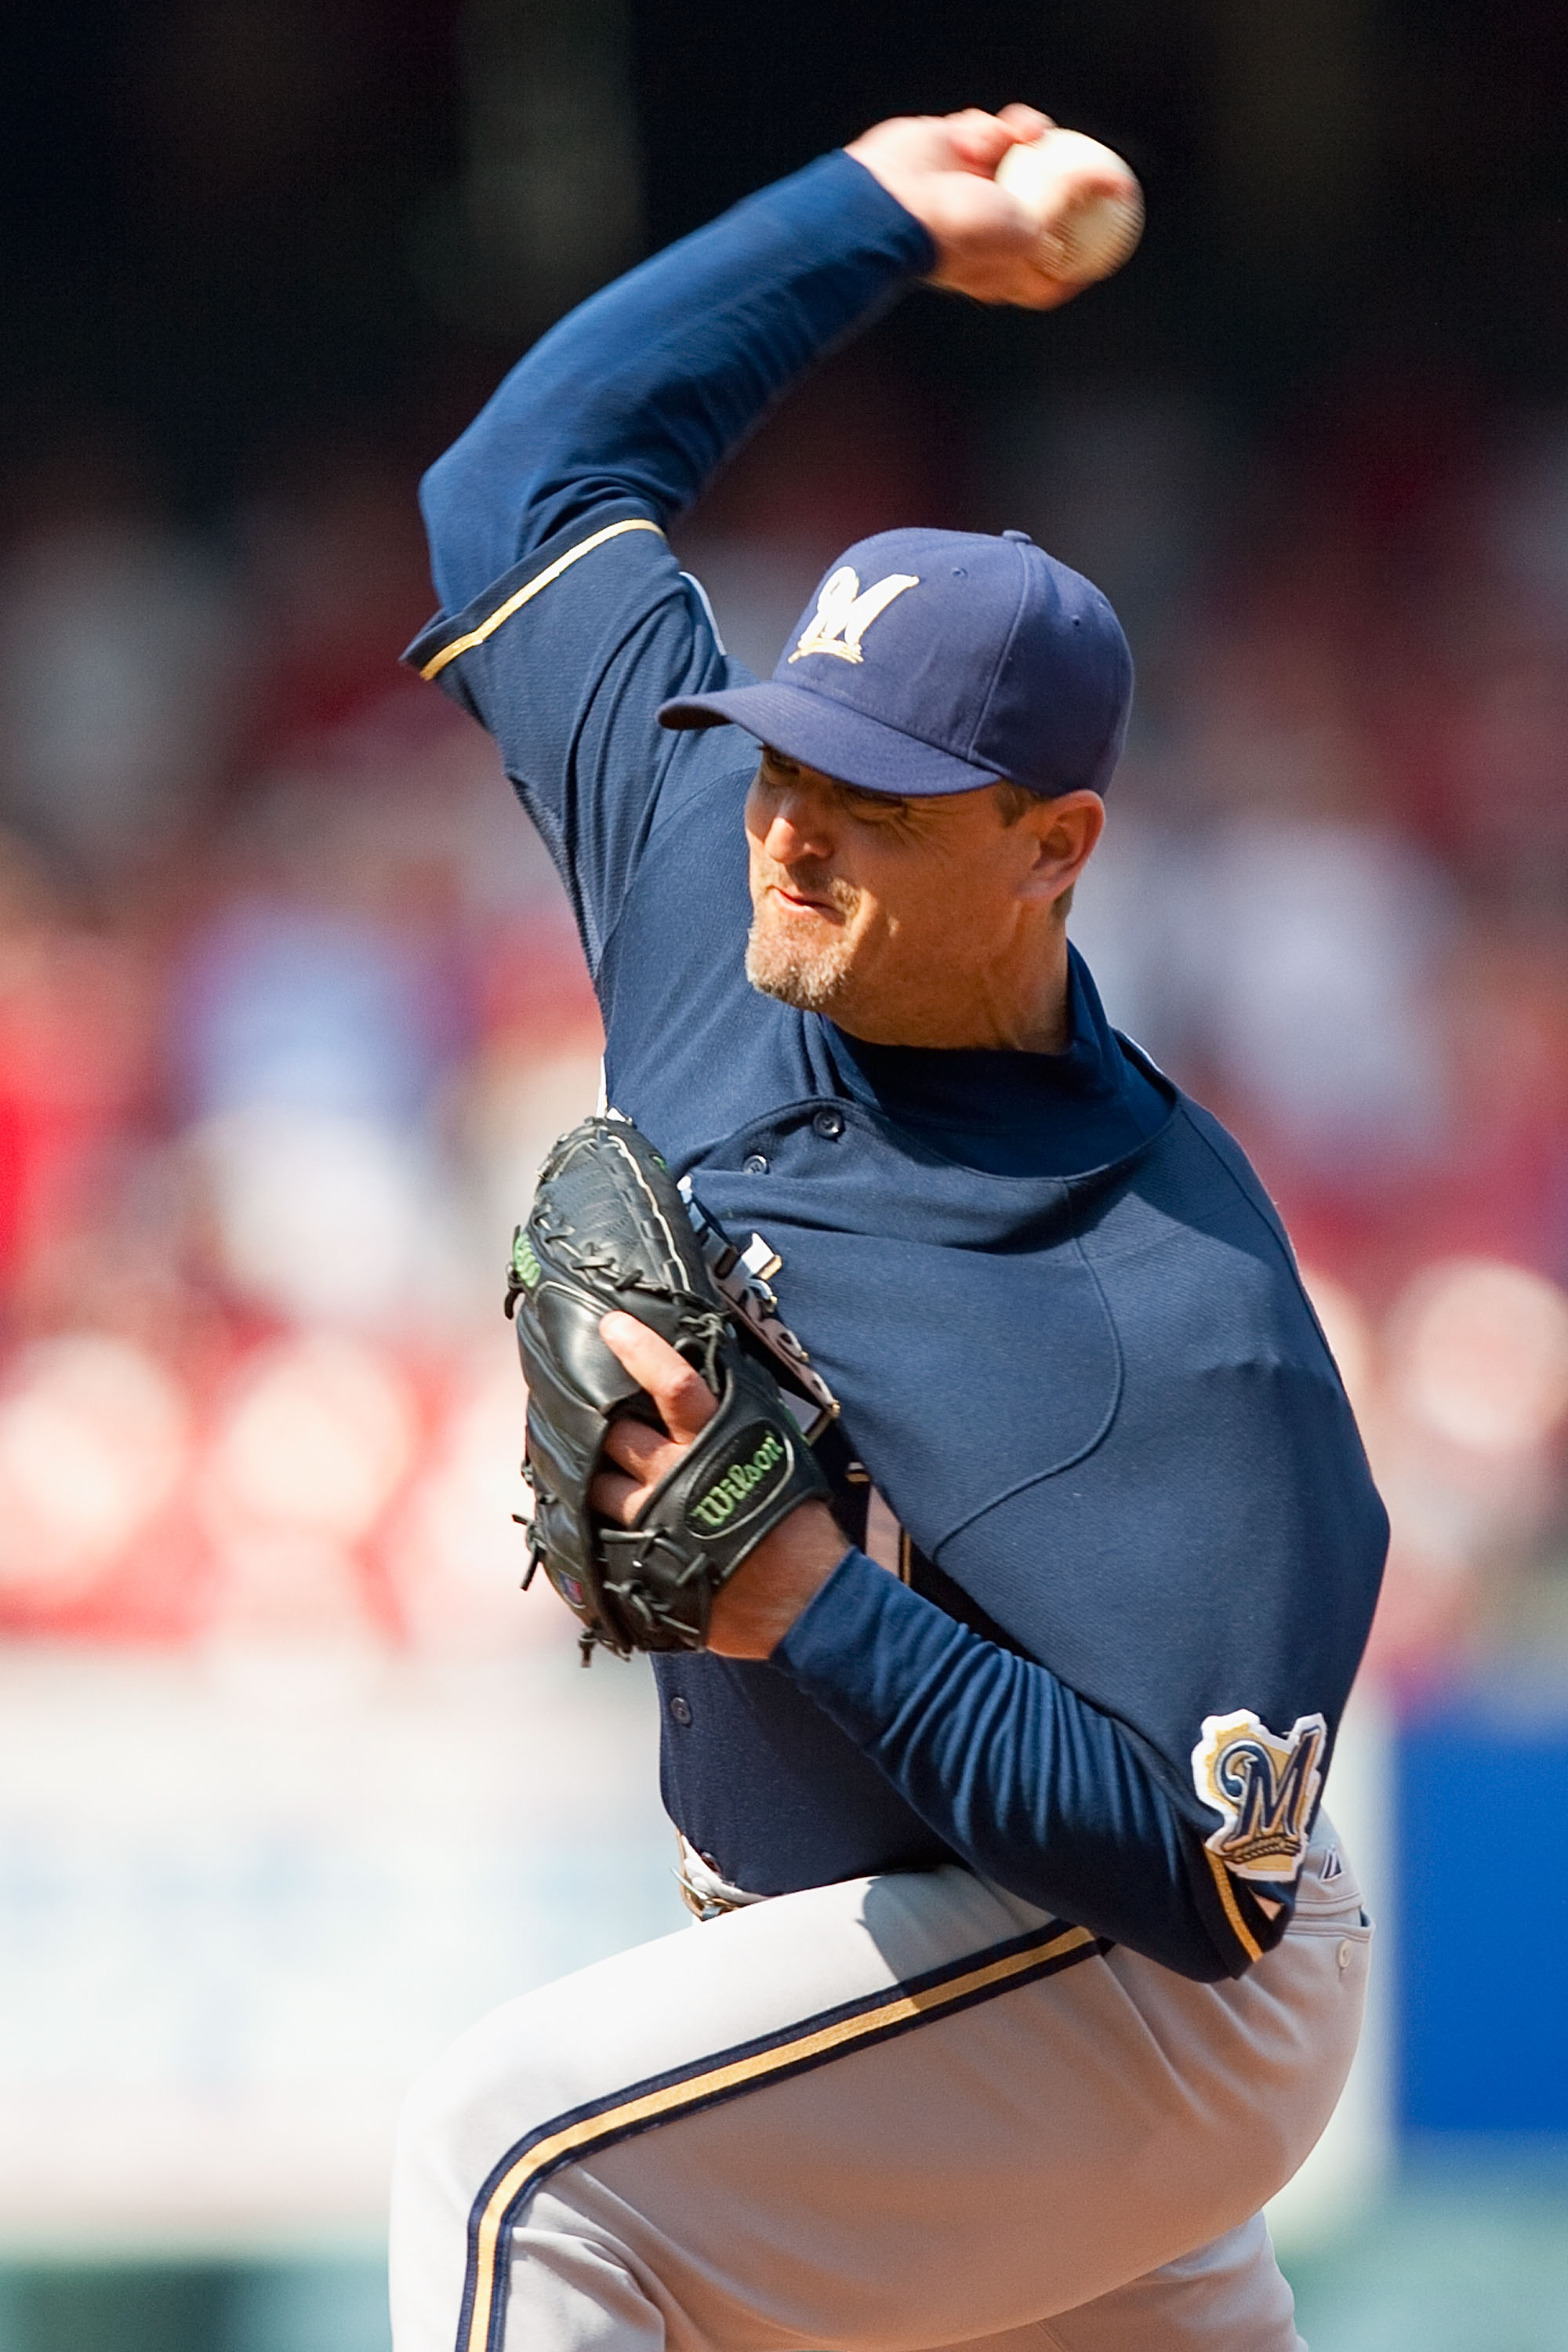 ST. LOUIS - AUGUST 18: Relief pitcher Trever Hoffman #51 of the Milwaukee Brewers throws against the St. Louis Cardinals at Busch Stadium on August 18, 2010 in St. Louis, Missouri.  The Brewers beat the Cardinals 3-2.  (Photo by Dilip Vishwanat/Getty Imag